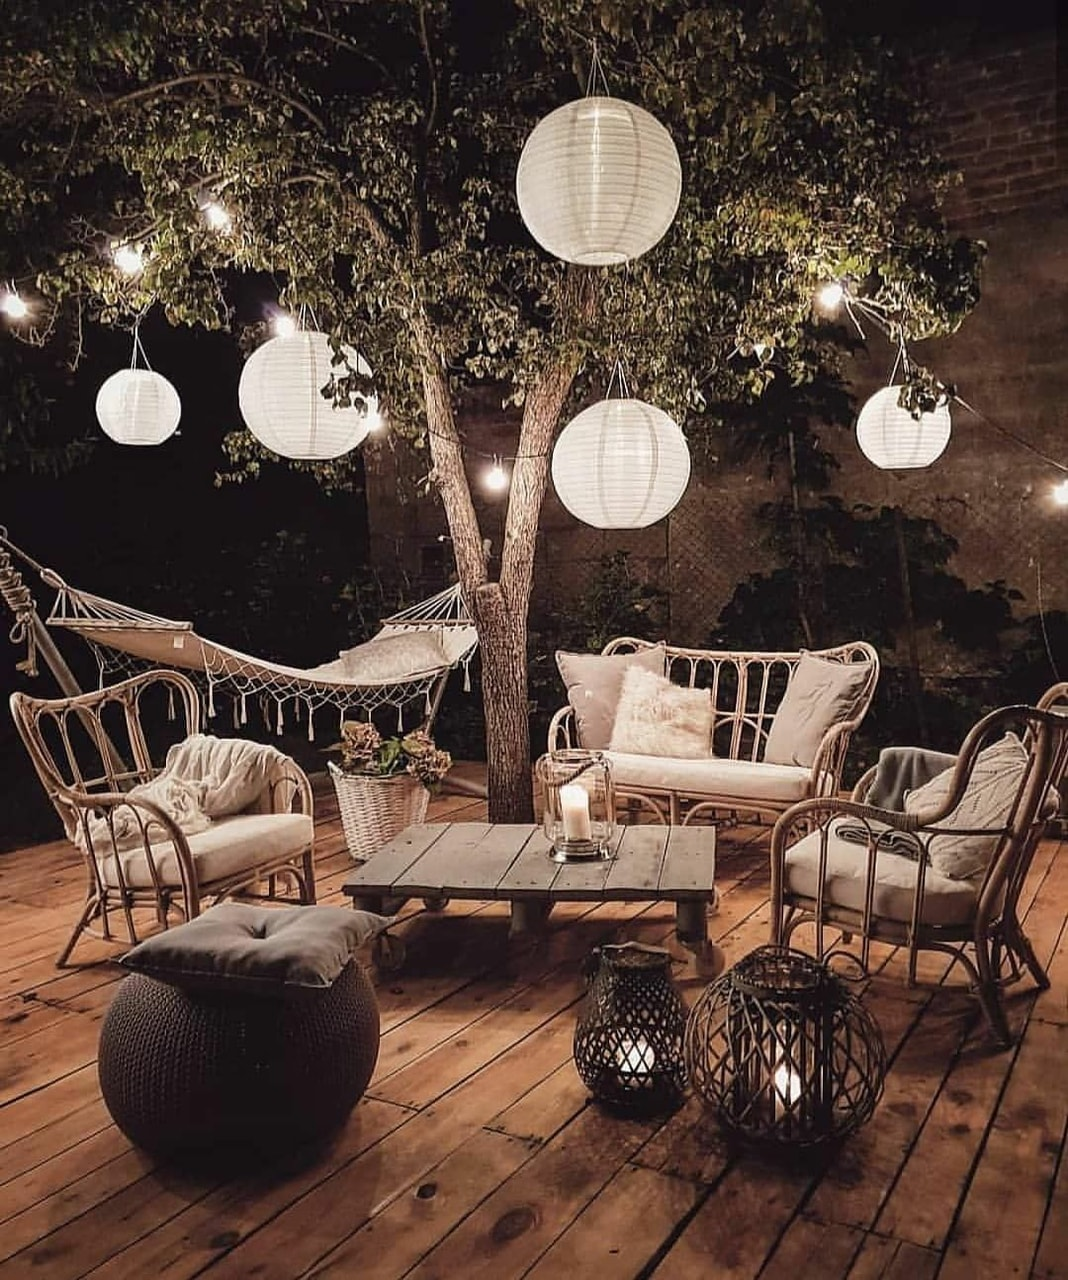 want, lights and relax